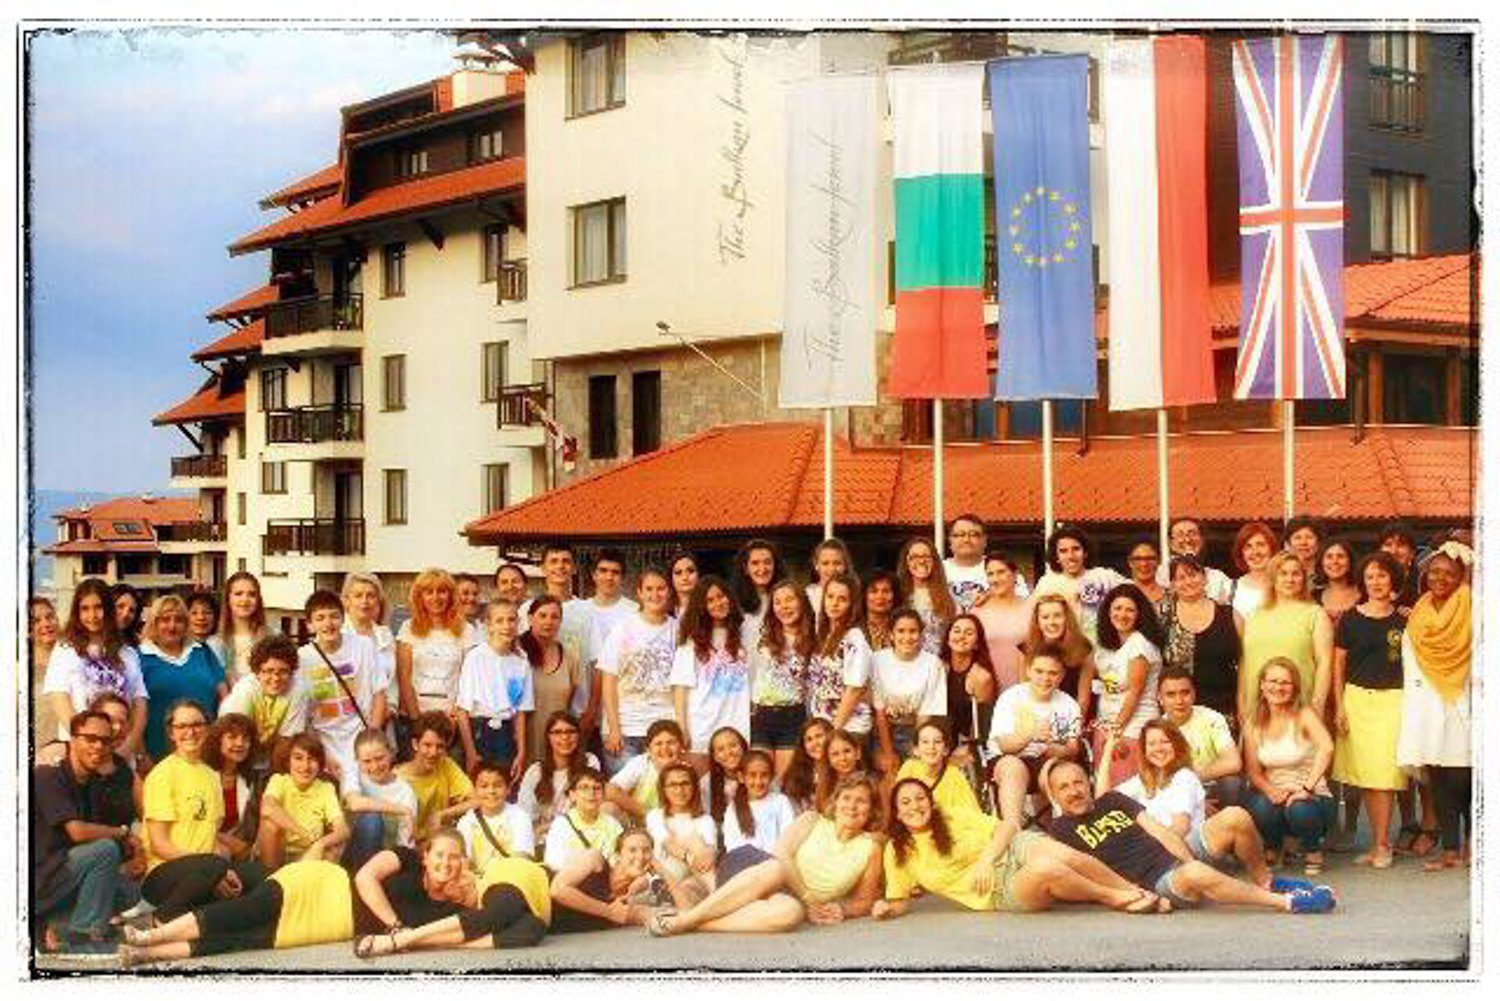 The Bulgarian National English Spelling Bee Camp Crew.